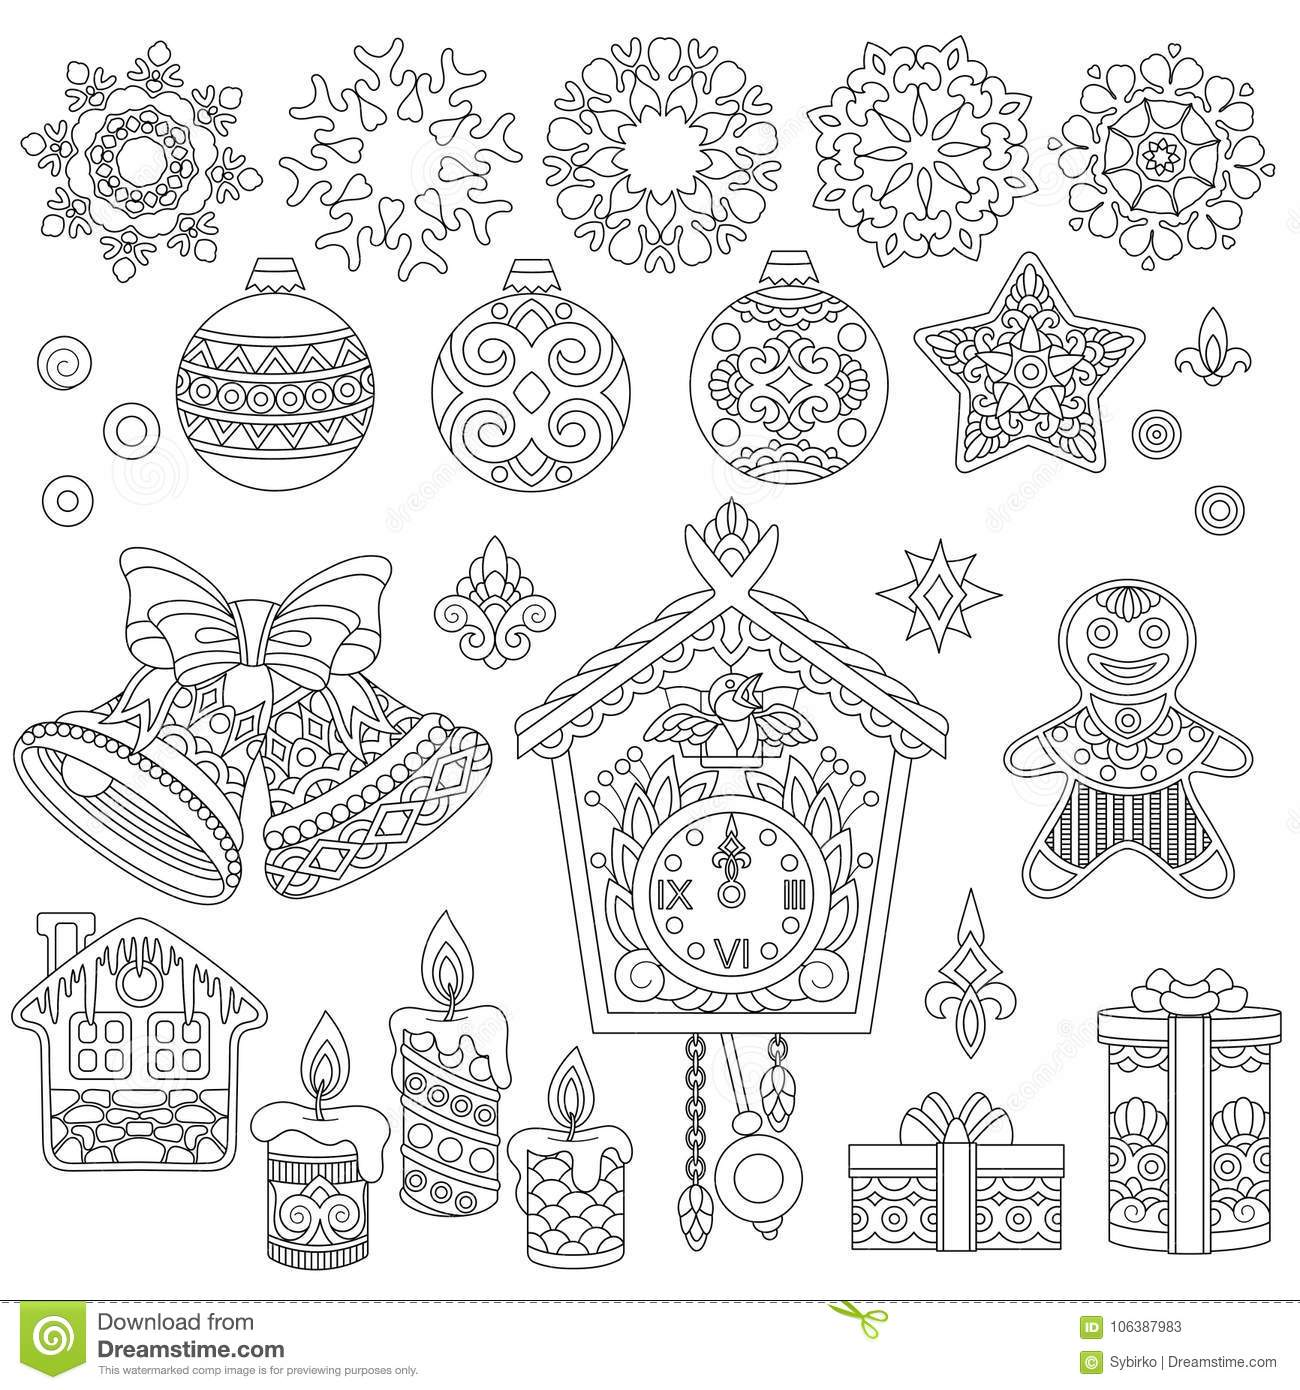 Christmas Doodle Coloring Pages With Doodles And Zentangle Ornaments Stock Vector